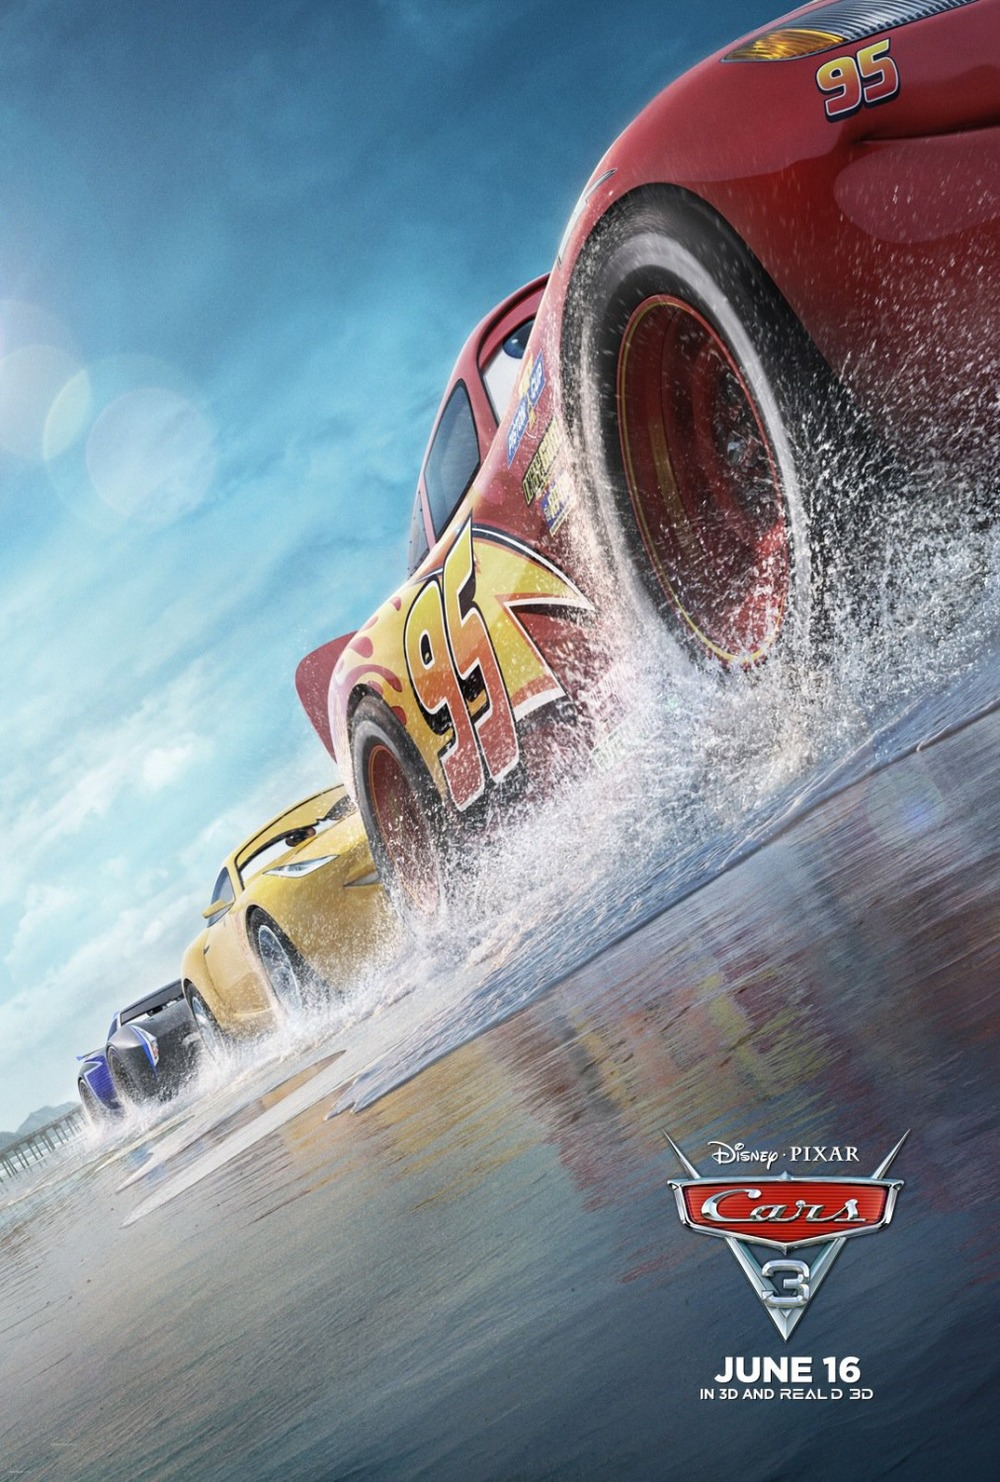 Cars 3 DVD Release Date | Redbox, Netflix, iTunes, Amazon